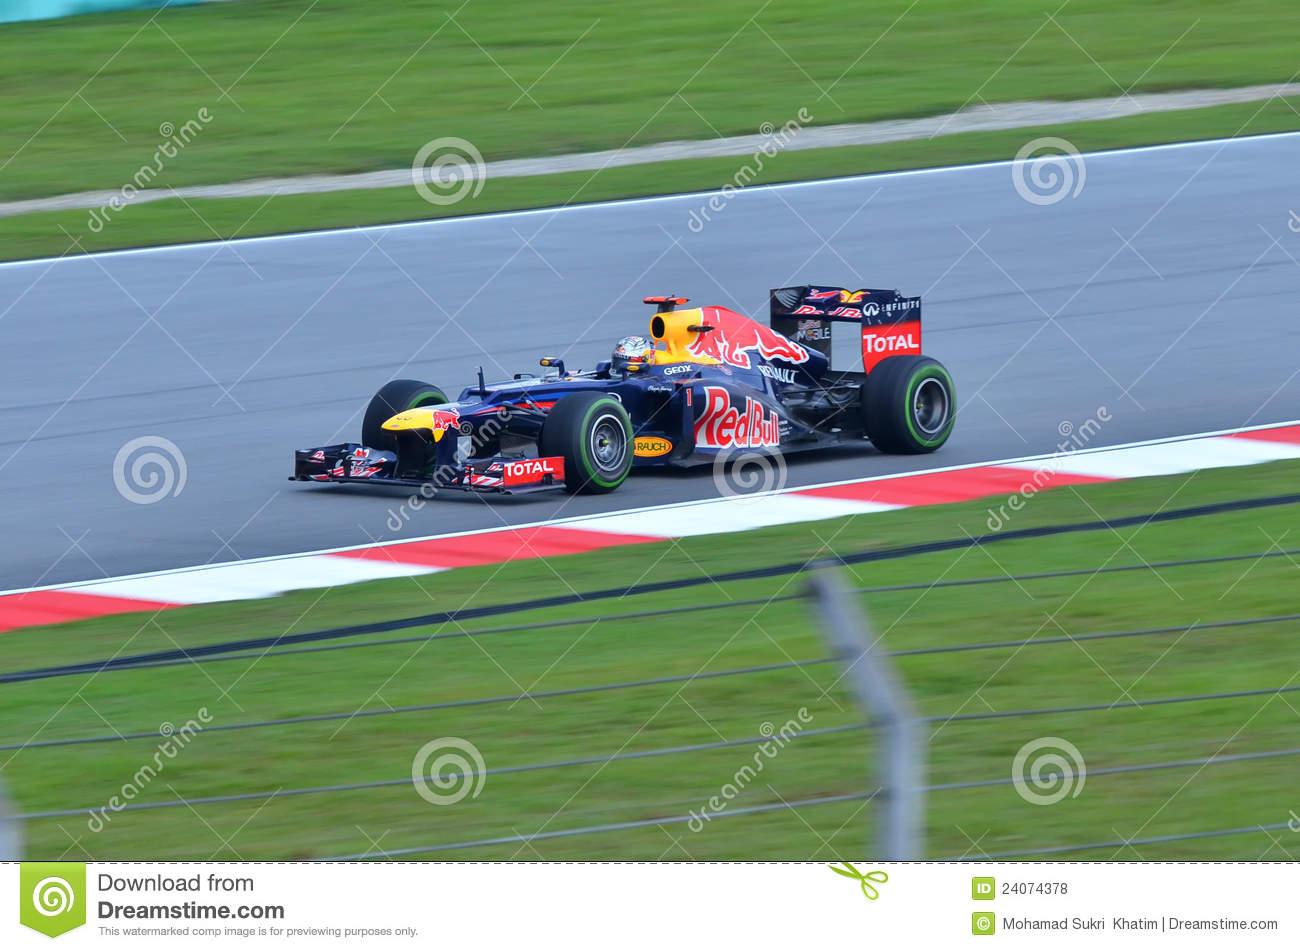 Showthread together with Sports Racing Cars Volkswagen Buggy Off Road further Max Verstappen Jerez 2015 as well Formula 1 Wallpapers likewise Red Bull Renault Formula One Racing Team. on race car circuit cartoons